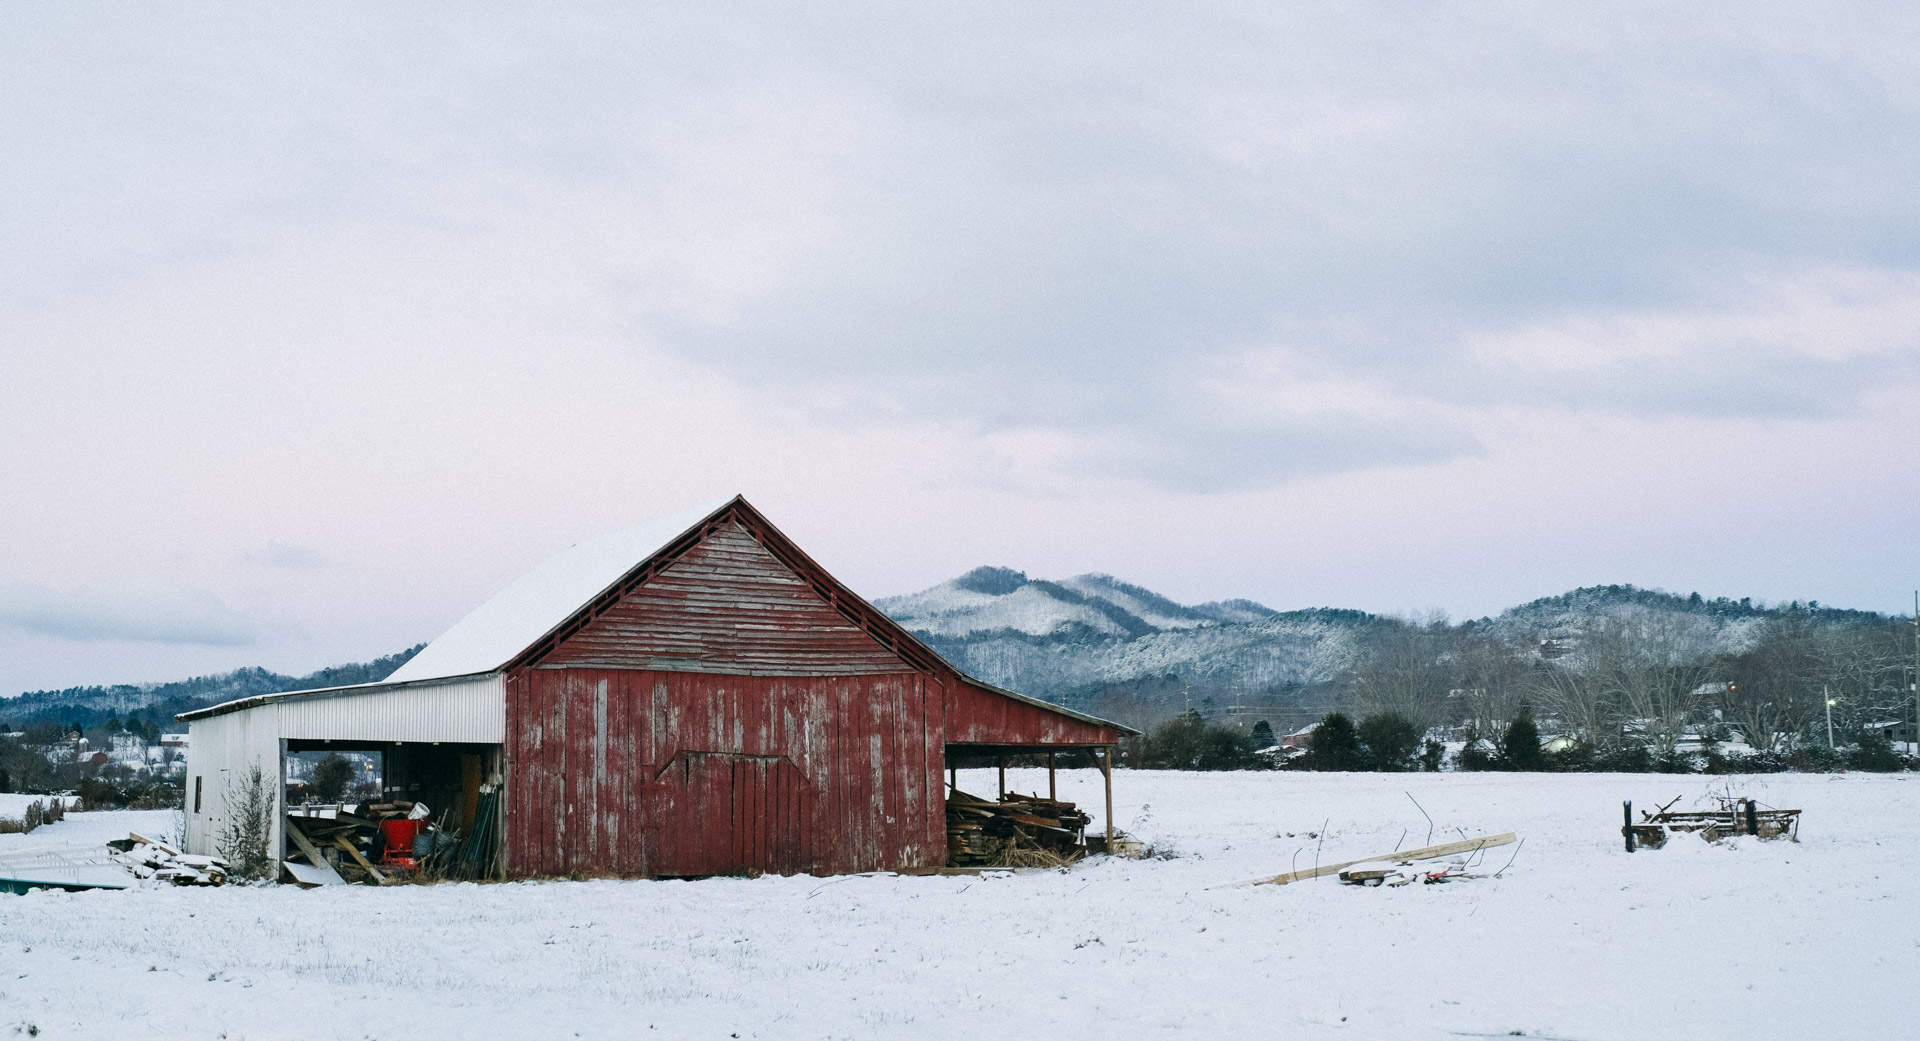 Wears Valley, Tennessee